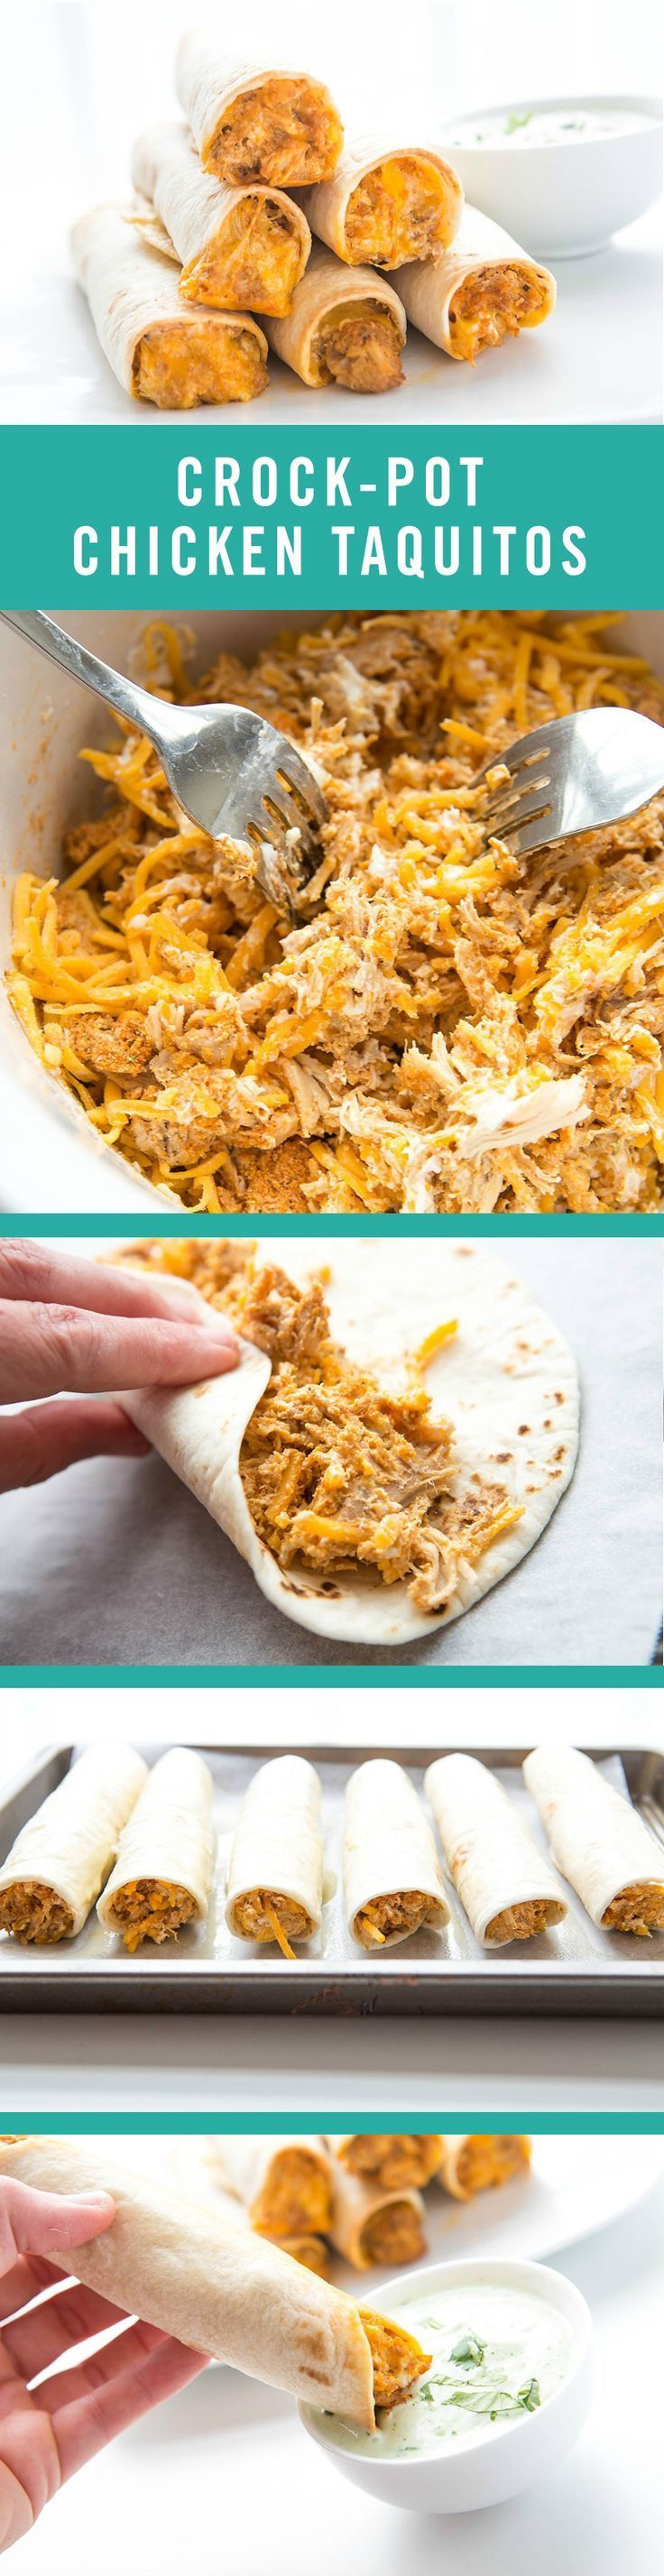 Kid-friendly meets parental appetites with this tasty and simple recipe. These Crock-Pot Chicken Taquitos couldn't be more easy to make. You just need a slow-cooker and five ingredients: cream cheese, taco seasoning, chicken, cheese, and tortillas.